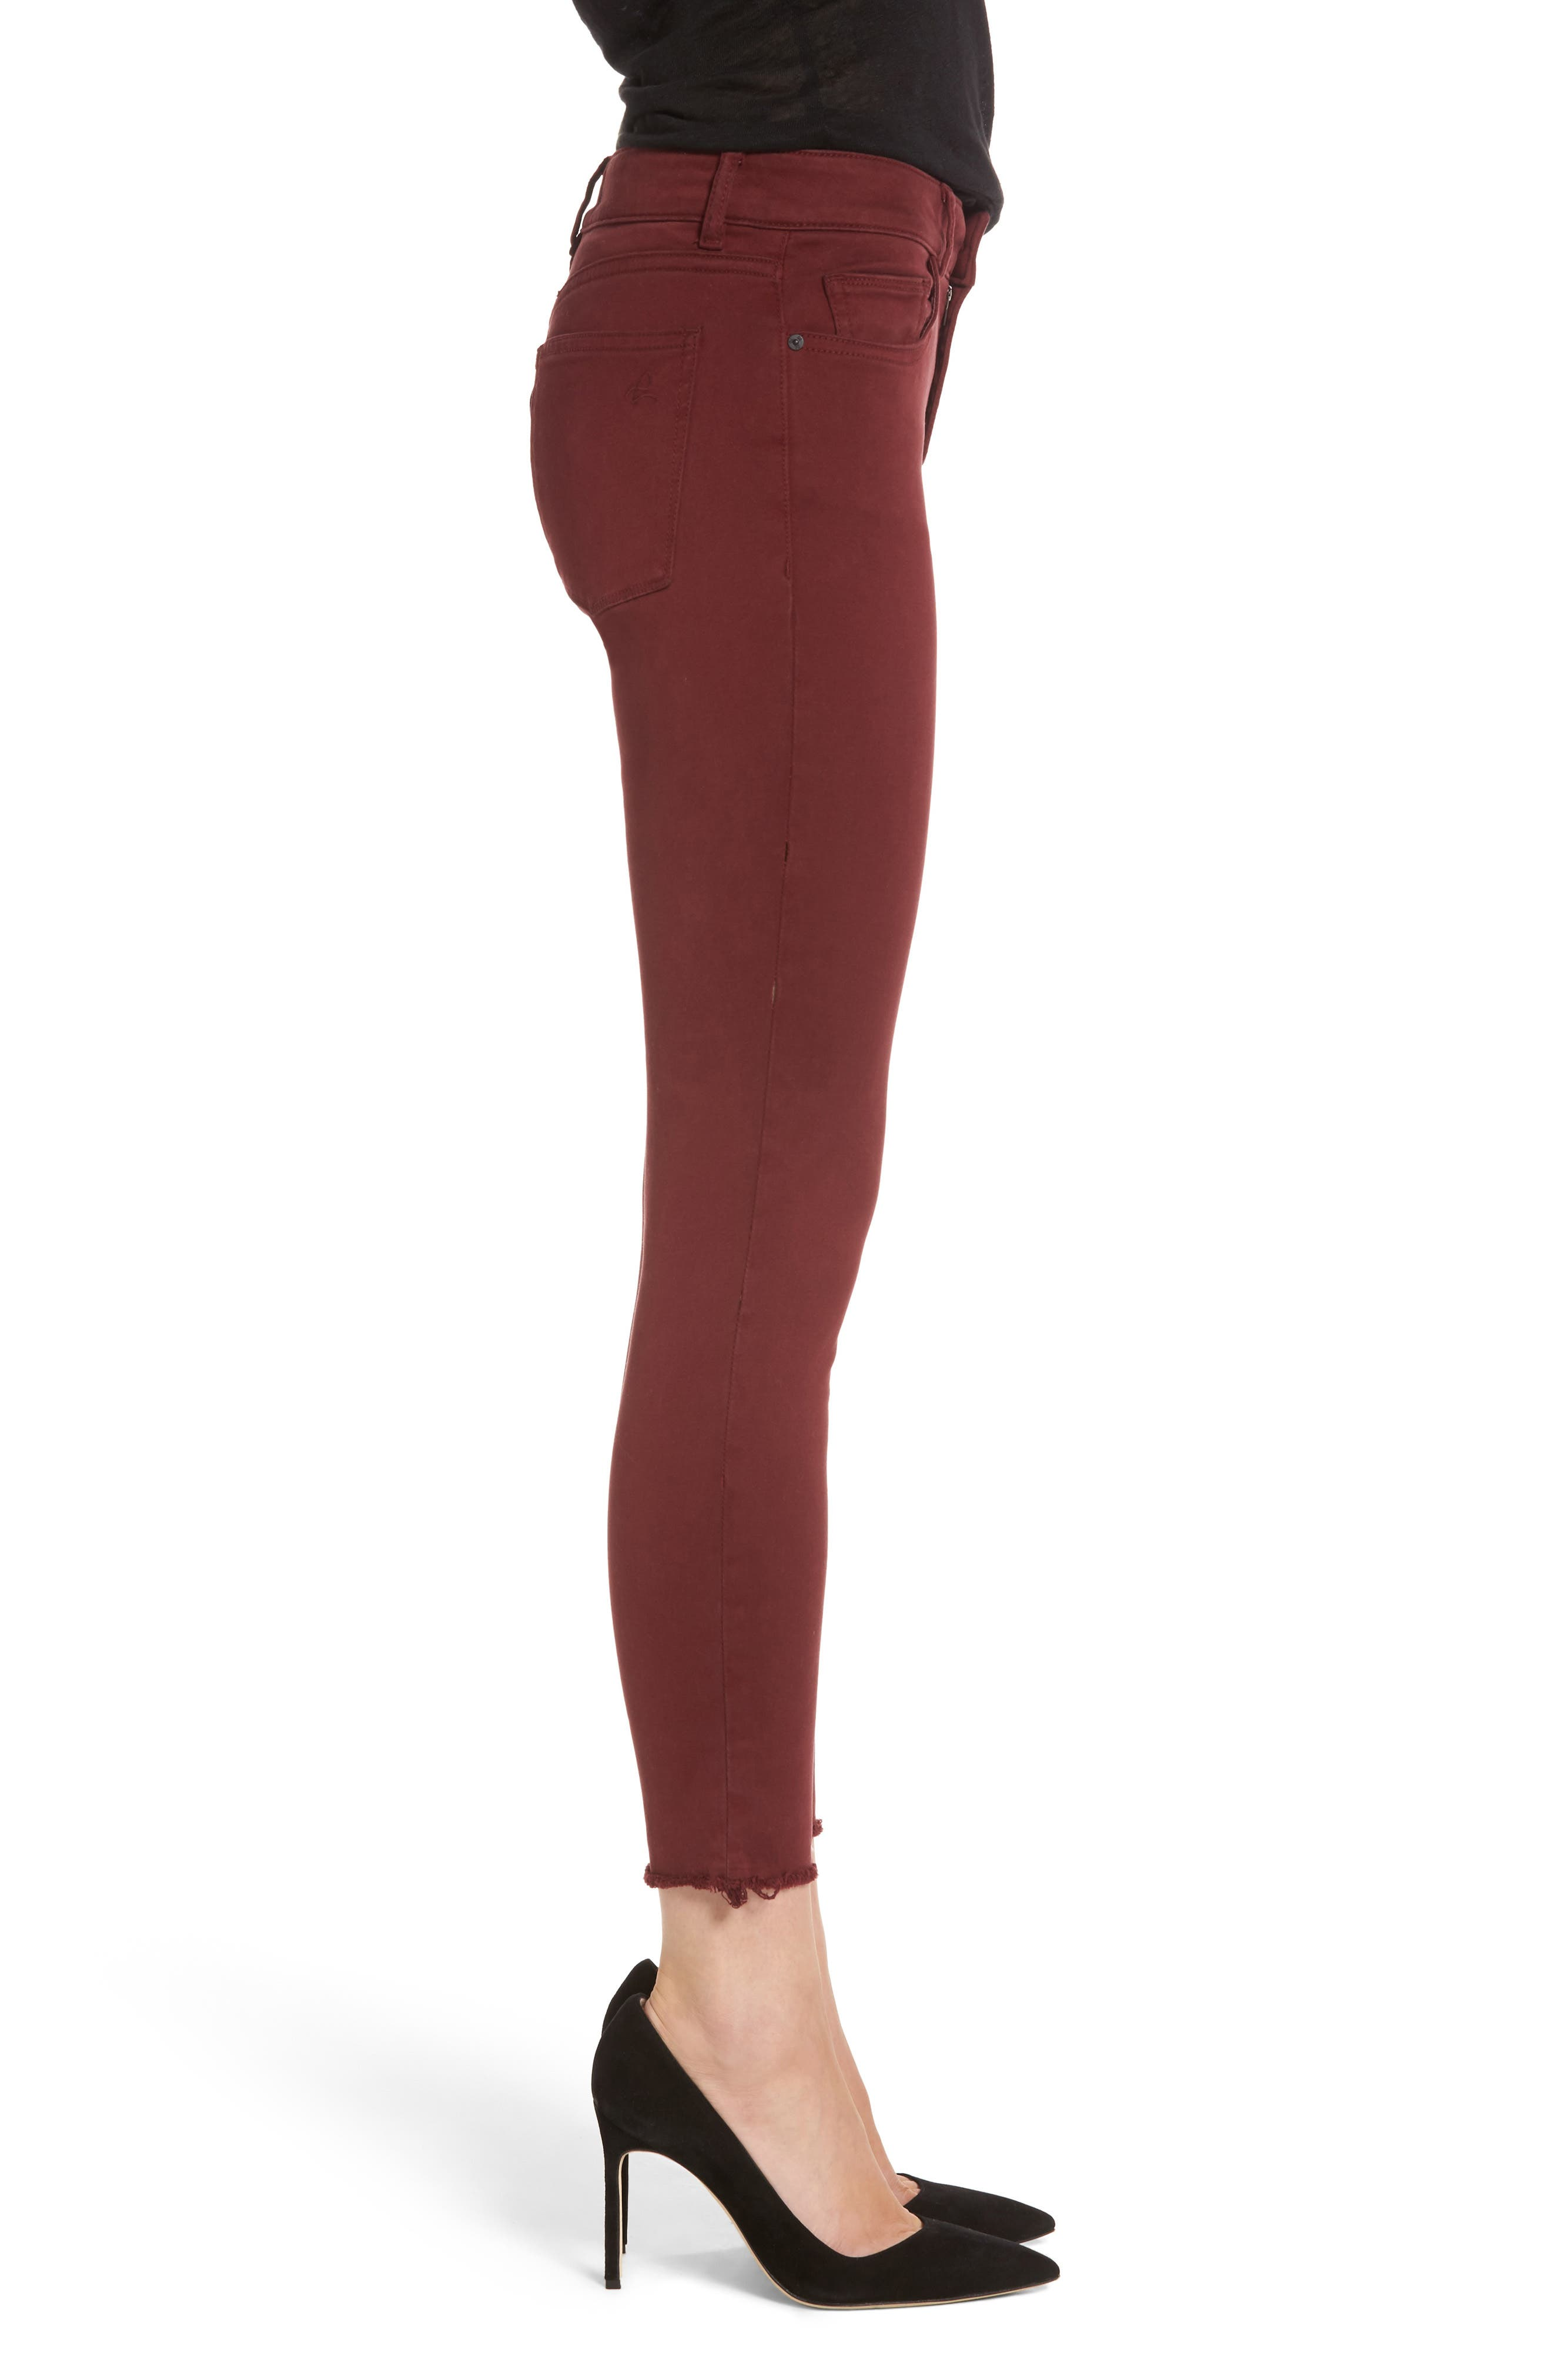 Margaux Instasculpt Ankle Skinny Jeans,                             Alternate thumbnail 3, color,                             Tawny Port